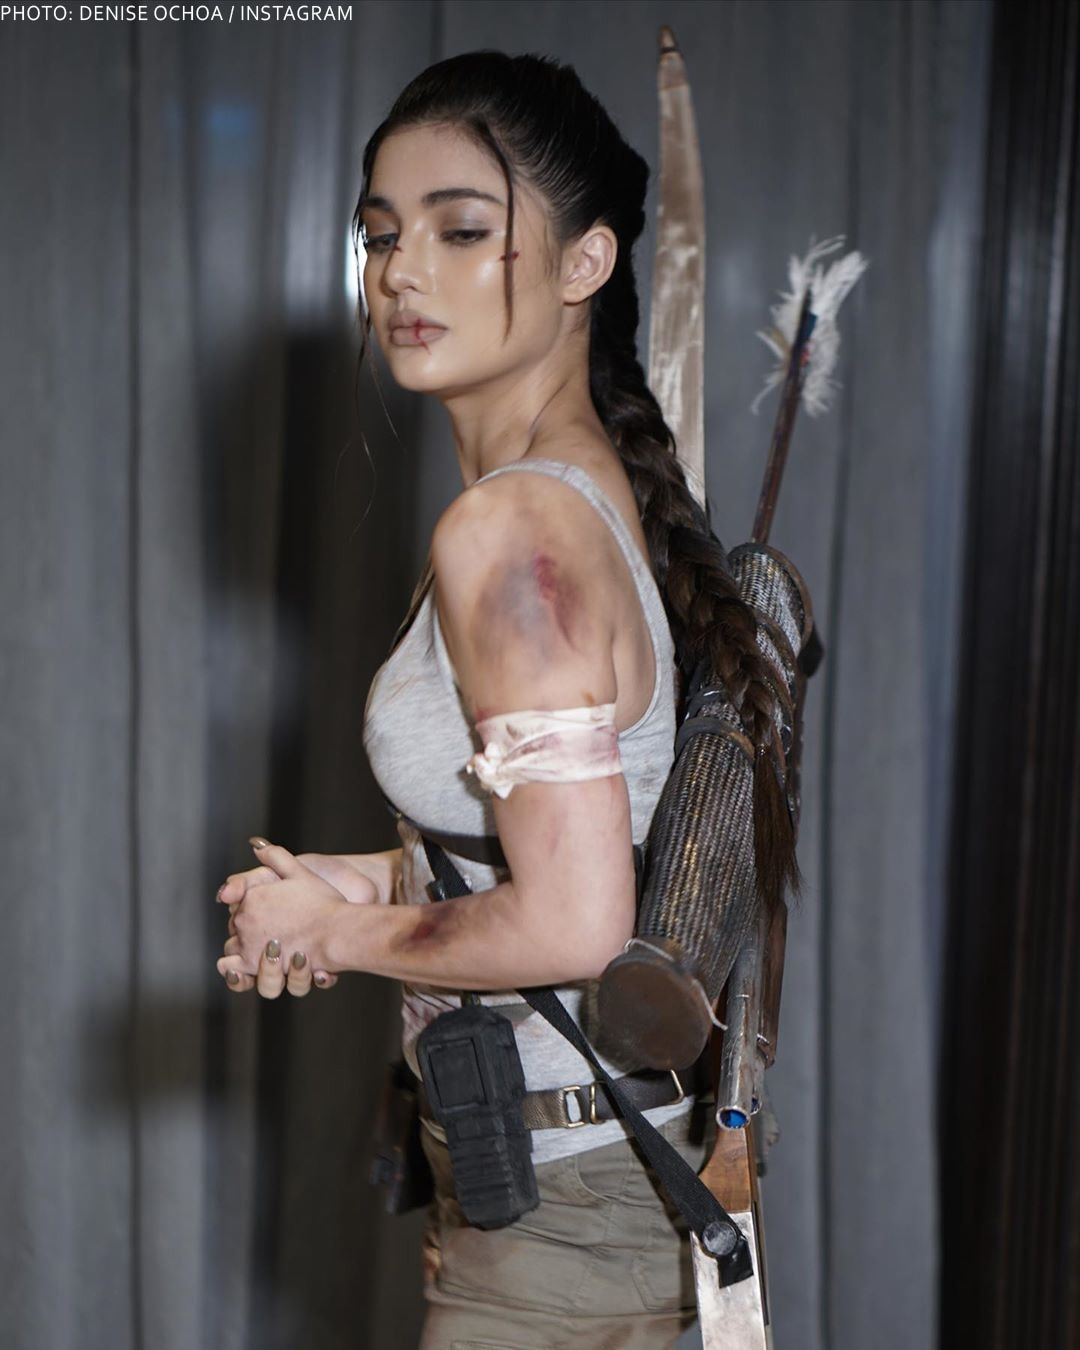 Jane de Leon in her Lara Croft getup during the Black Magic event